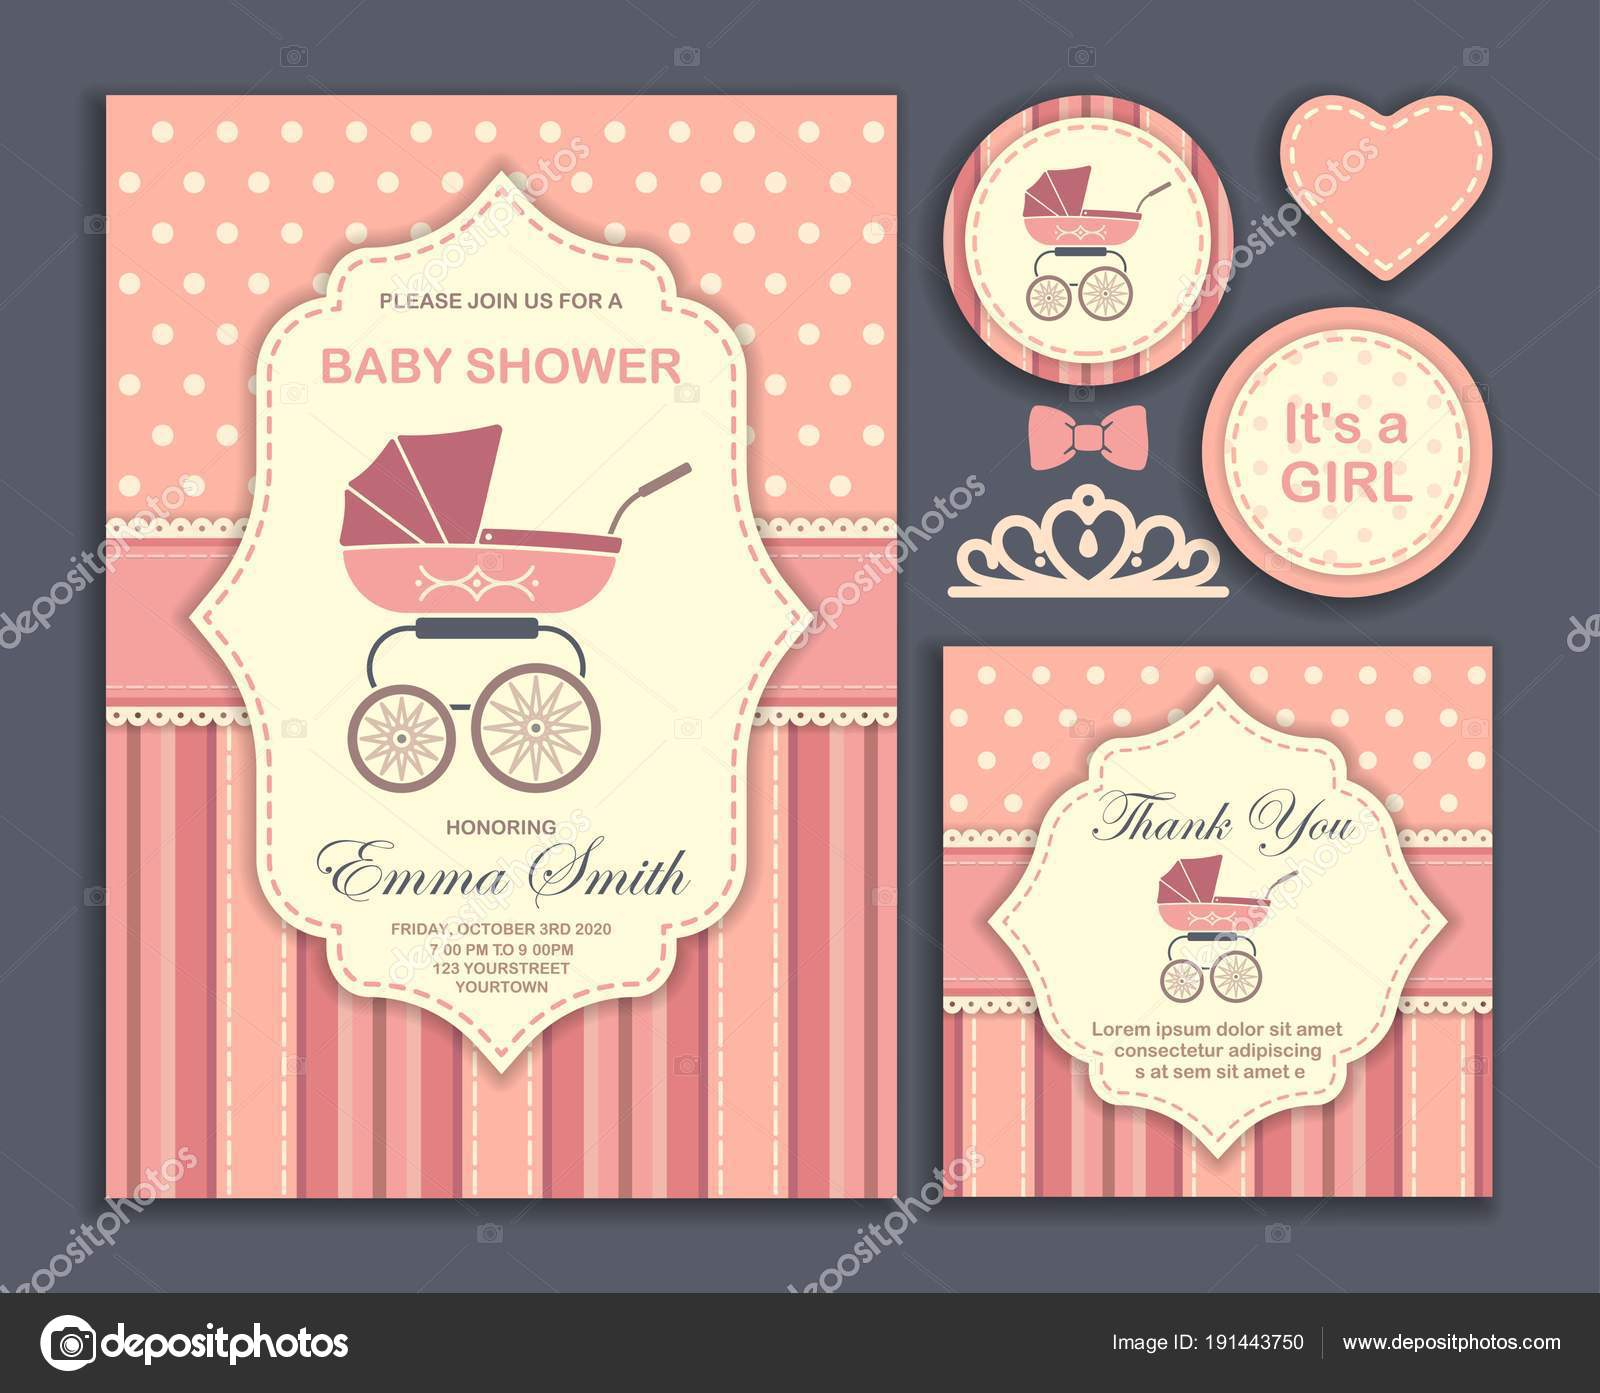 Descargar Invitaciones Para Baby Shower Personalizadas